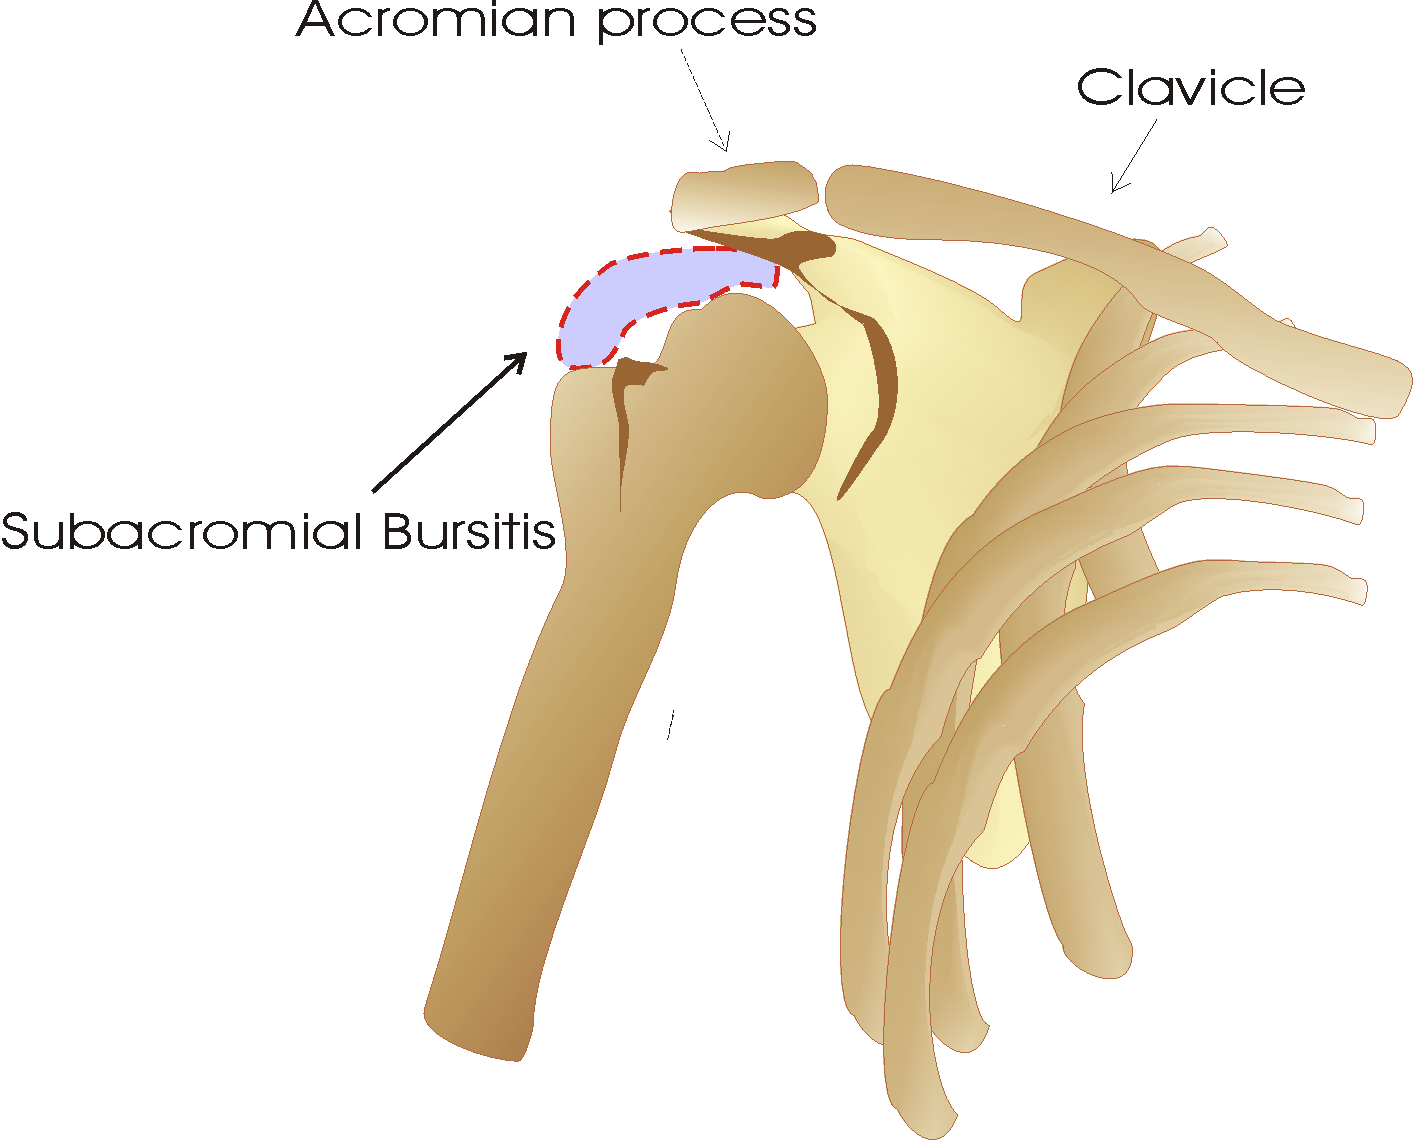 the clinical description of the inflammation of the bursa bursitis Trochanteric bursitis is a common diagnosis for patients presenting with lateral hip pain in theory, this makes complete sense when considering the anatomy and proximity of the trochanteric.